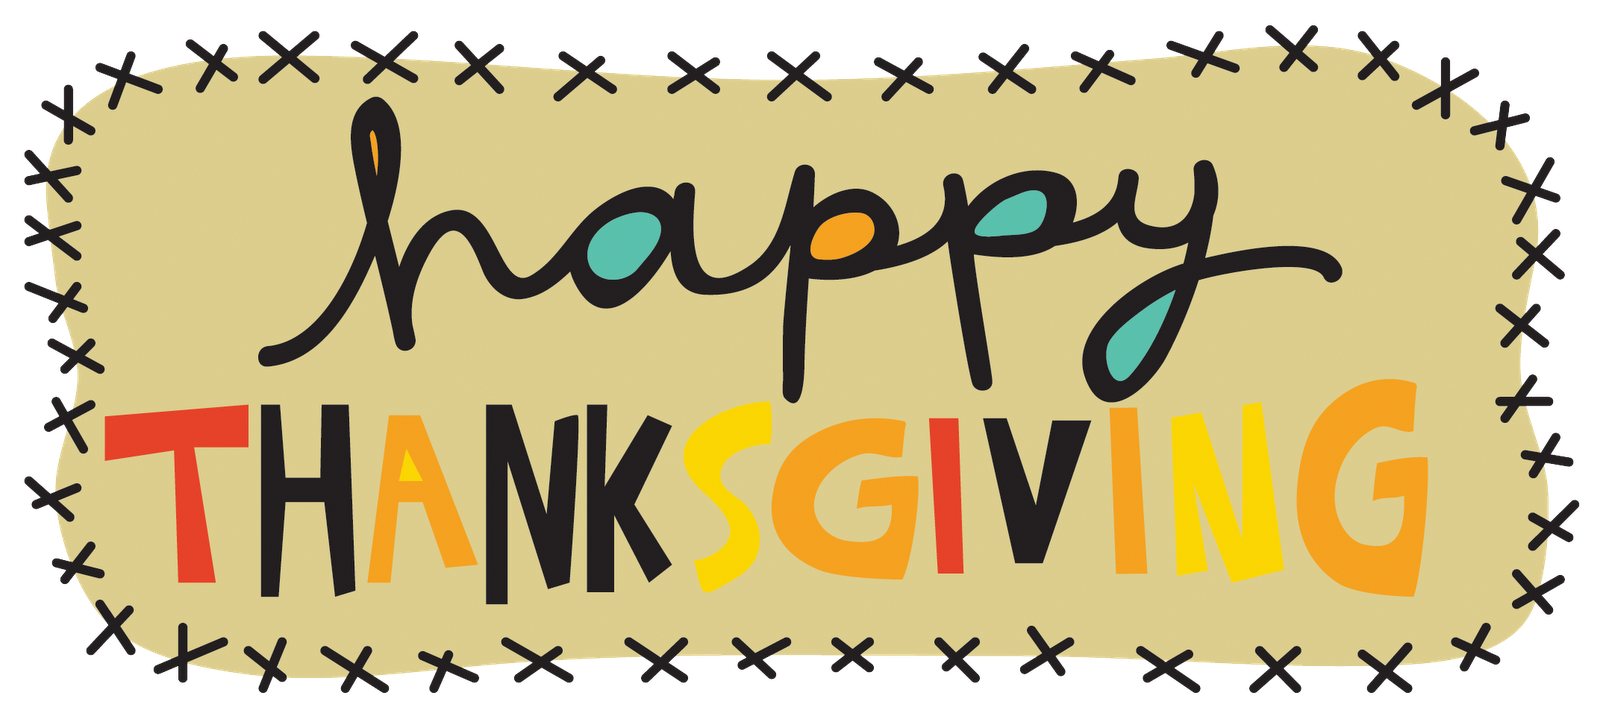 2016{*} Happy Thanksgiving Images,Pictures, Clip Arts, Wallpapers